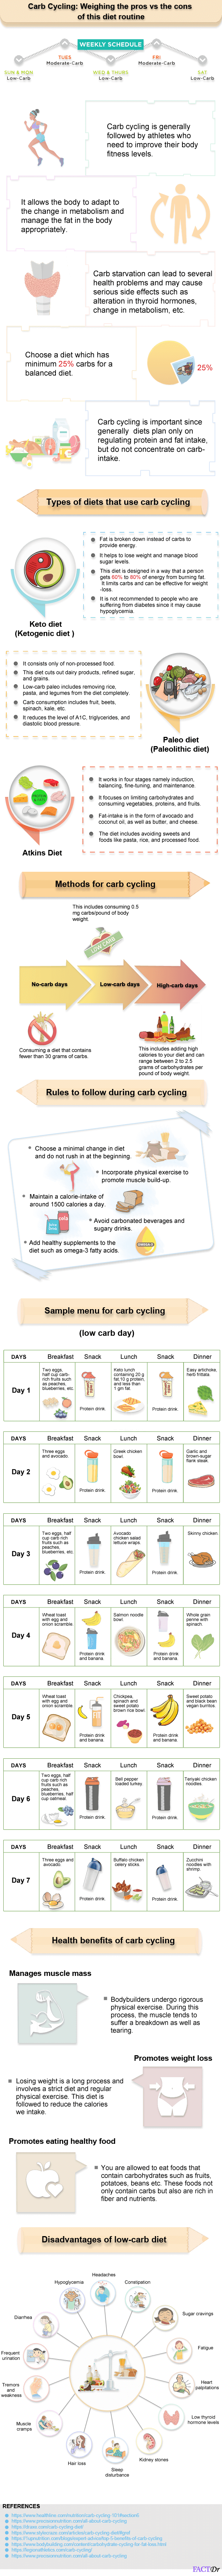 Carb cycling infographic